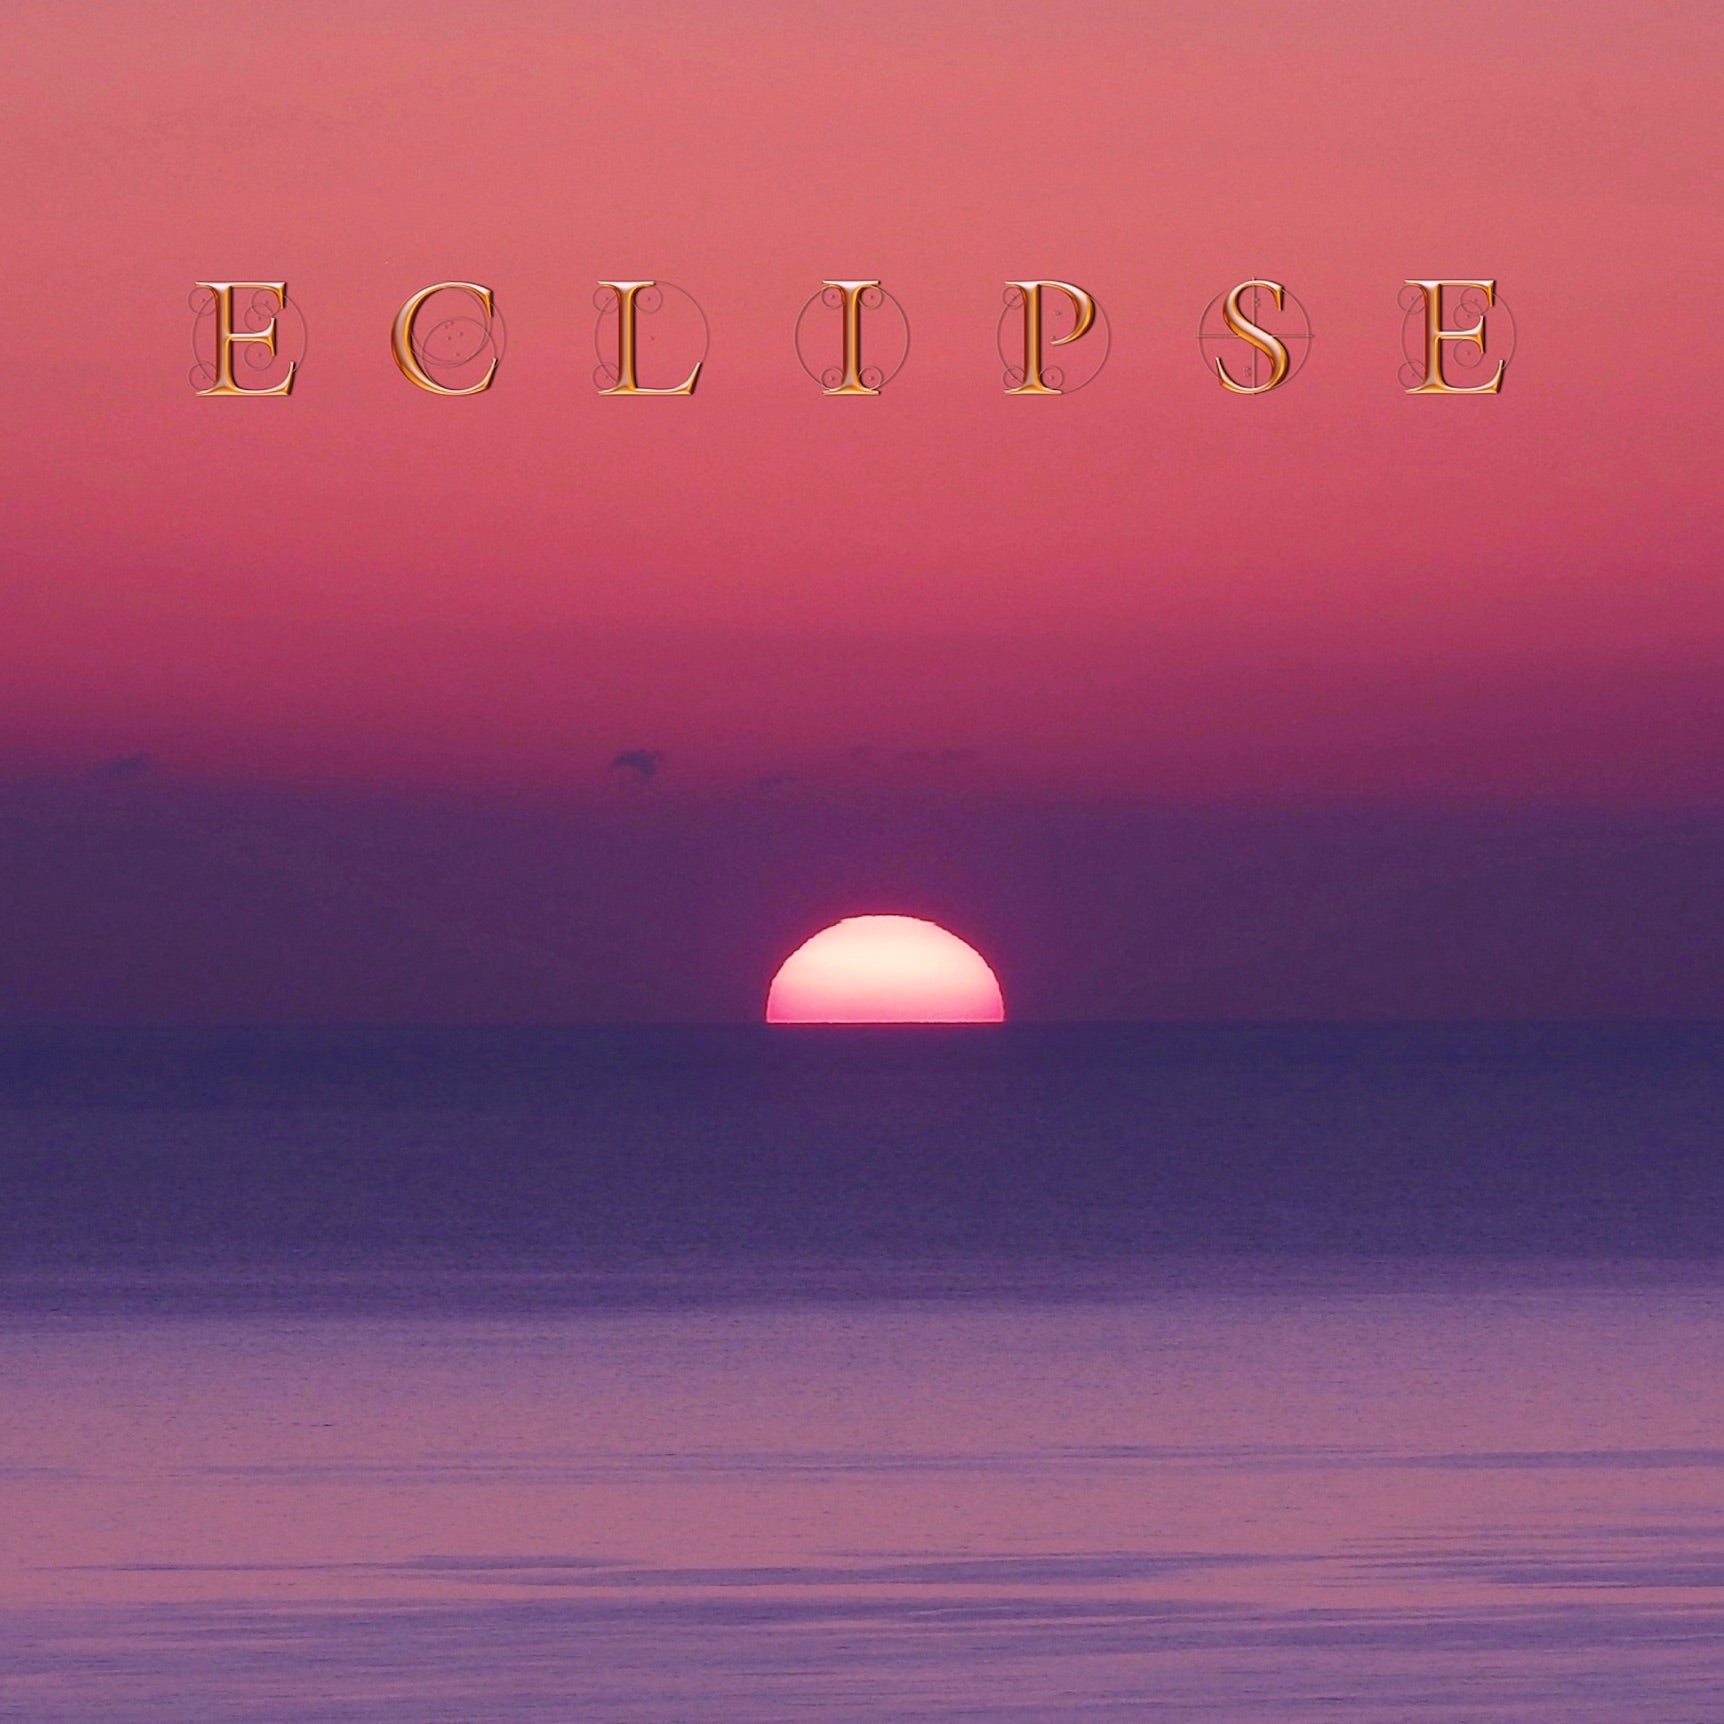 Eclipse by Rob Hulford